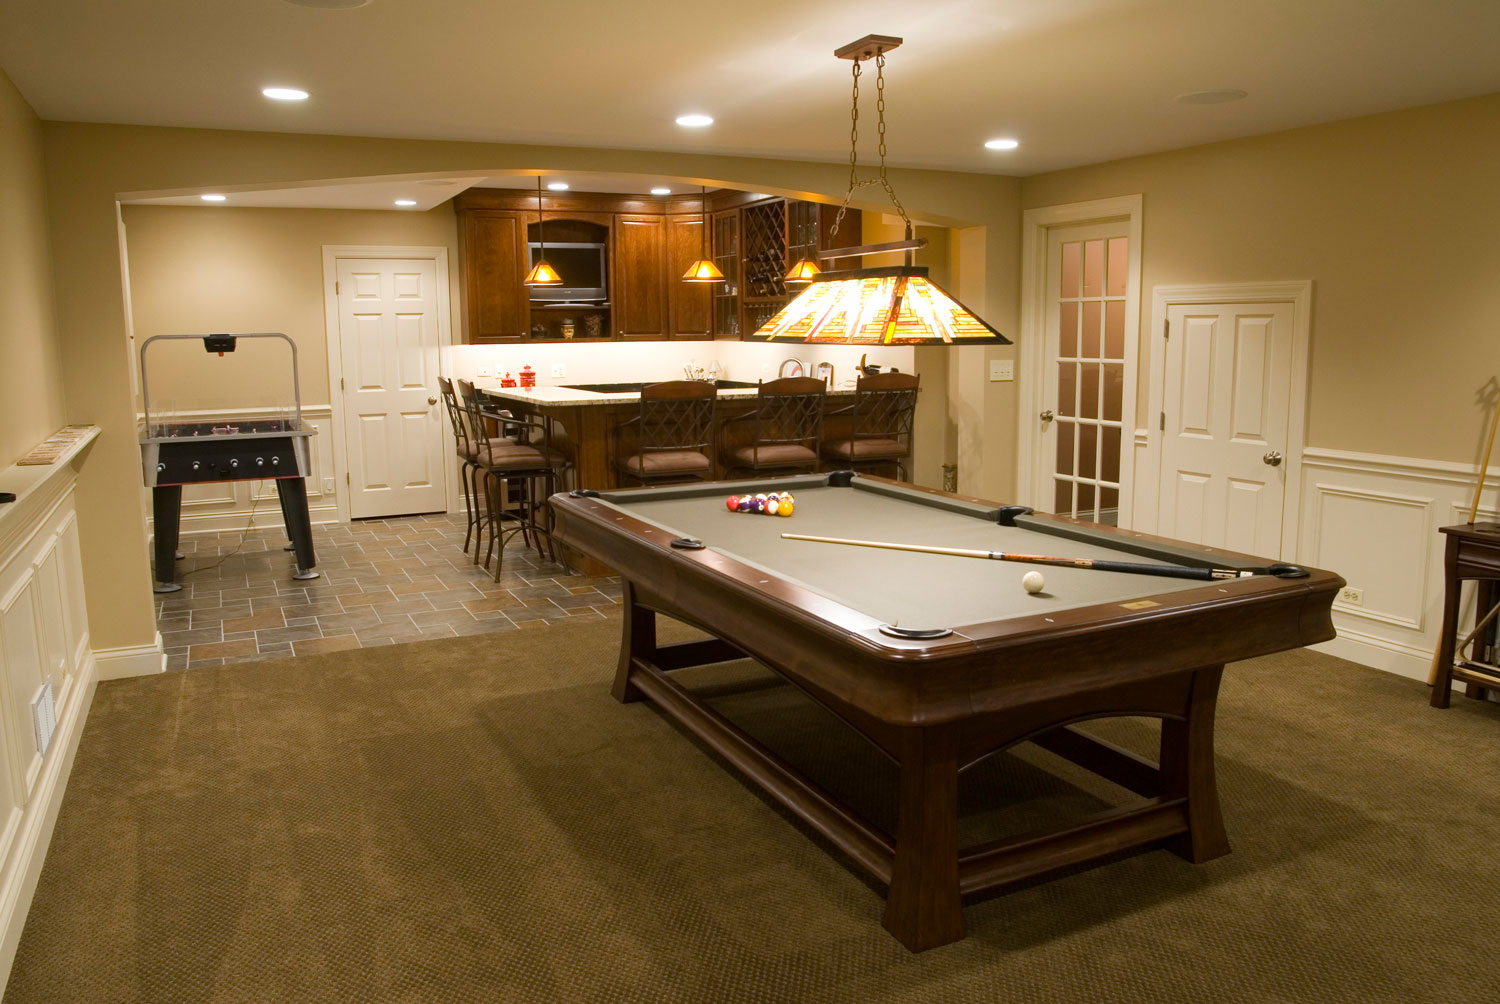 John debbie 39 s basement remodel pictures home for Basement swimming pool ideas